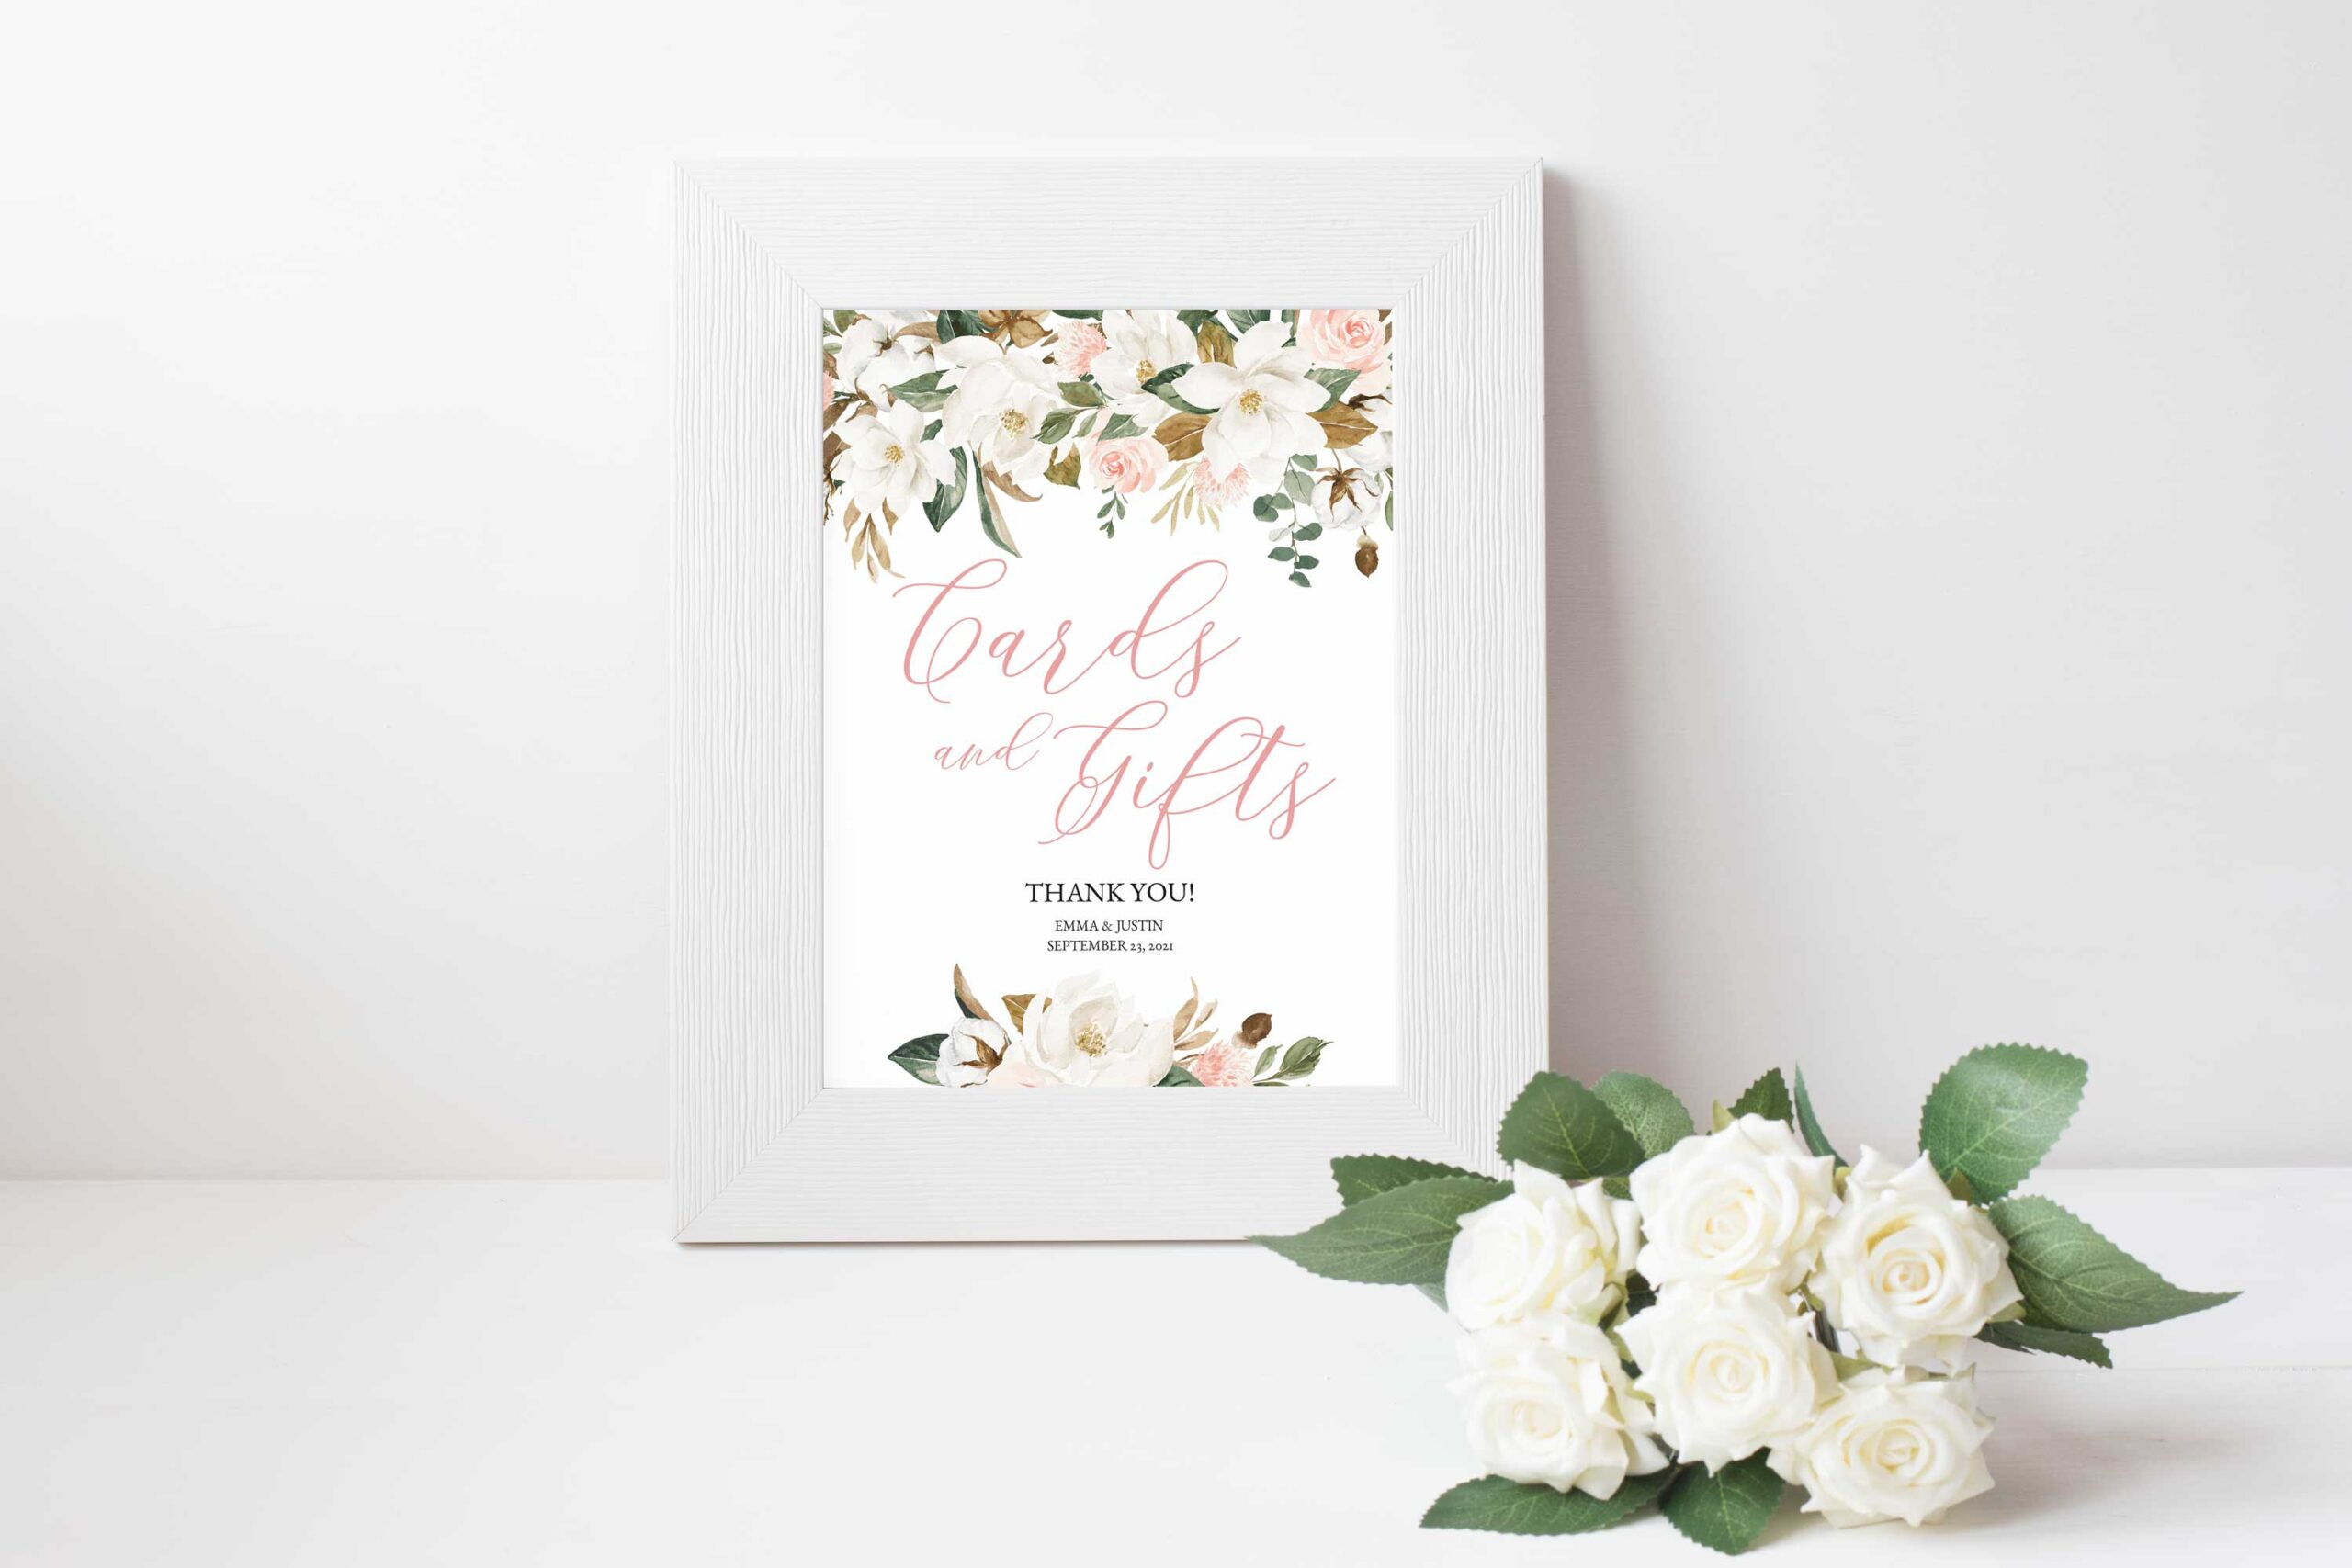 magnolia cards and gifts wedding sign